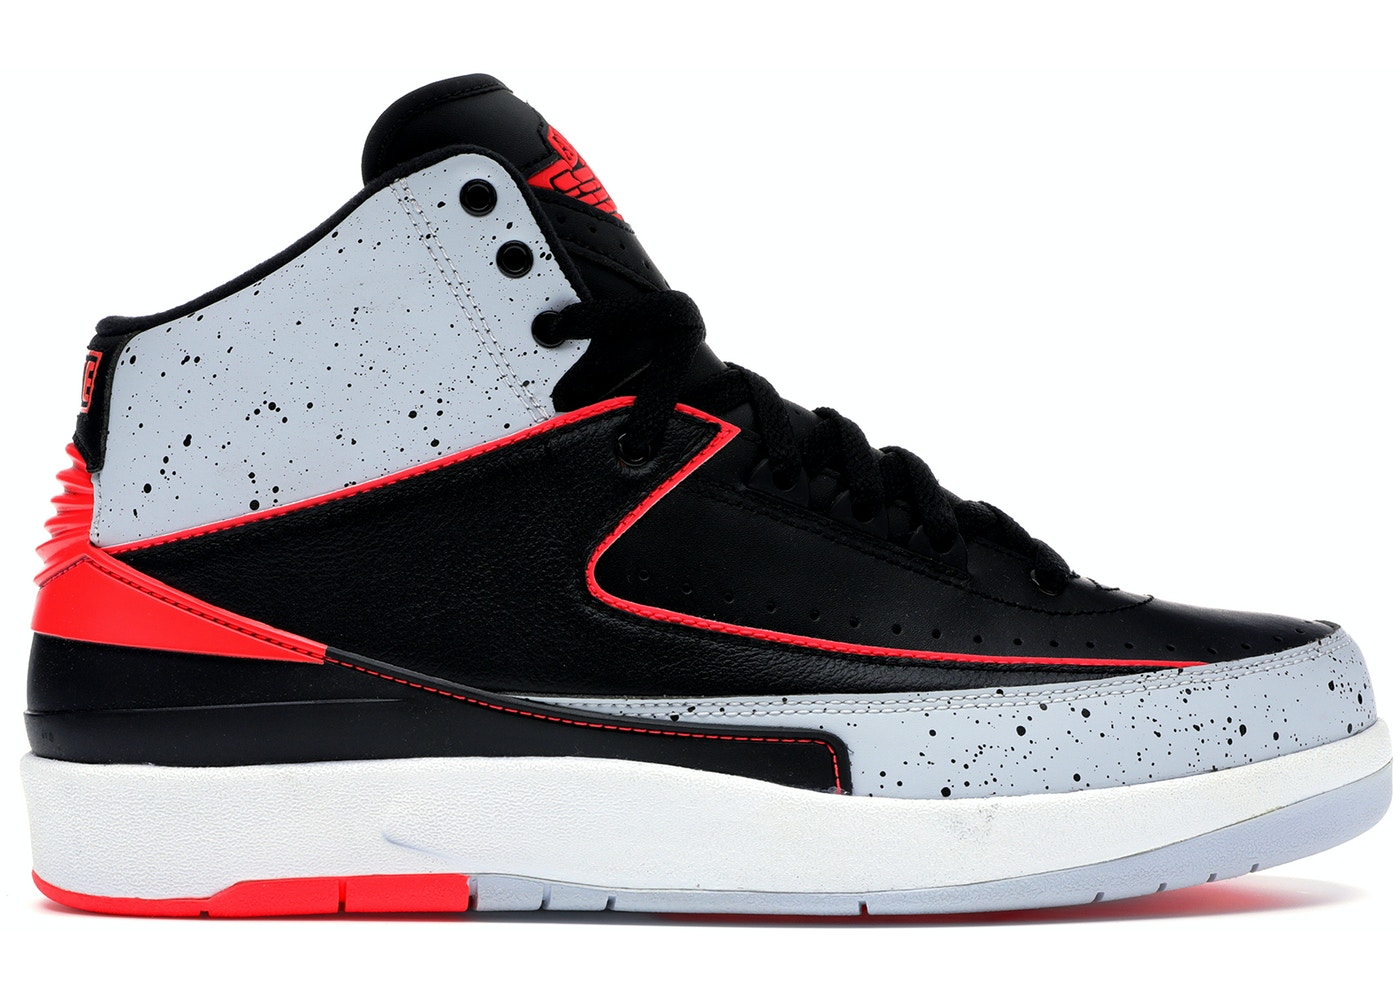 the latest 00ee3 384b9 Jordan 2 Retro Infrared Cement - 385475-023